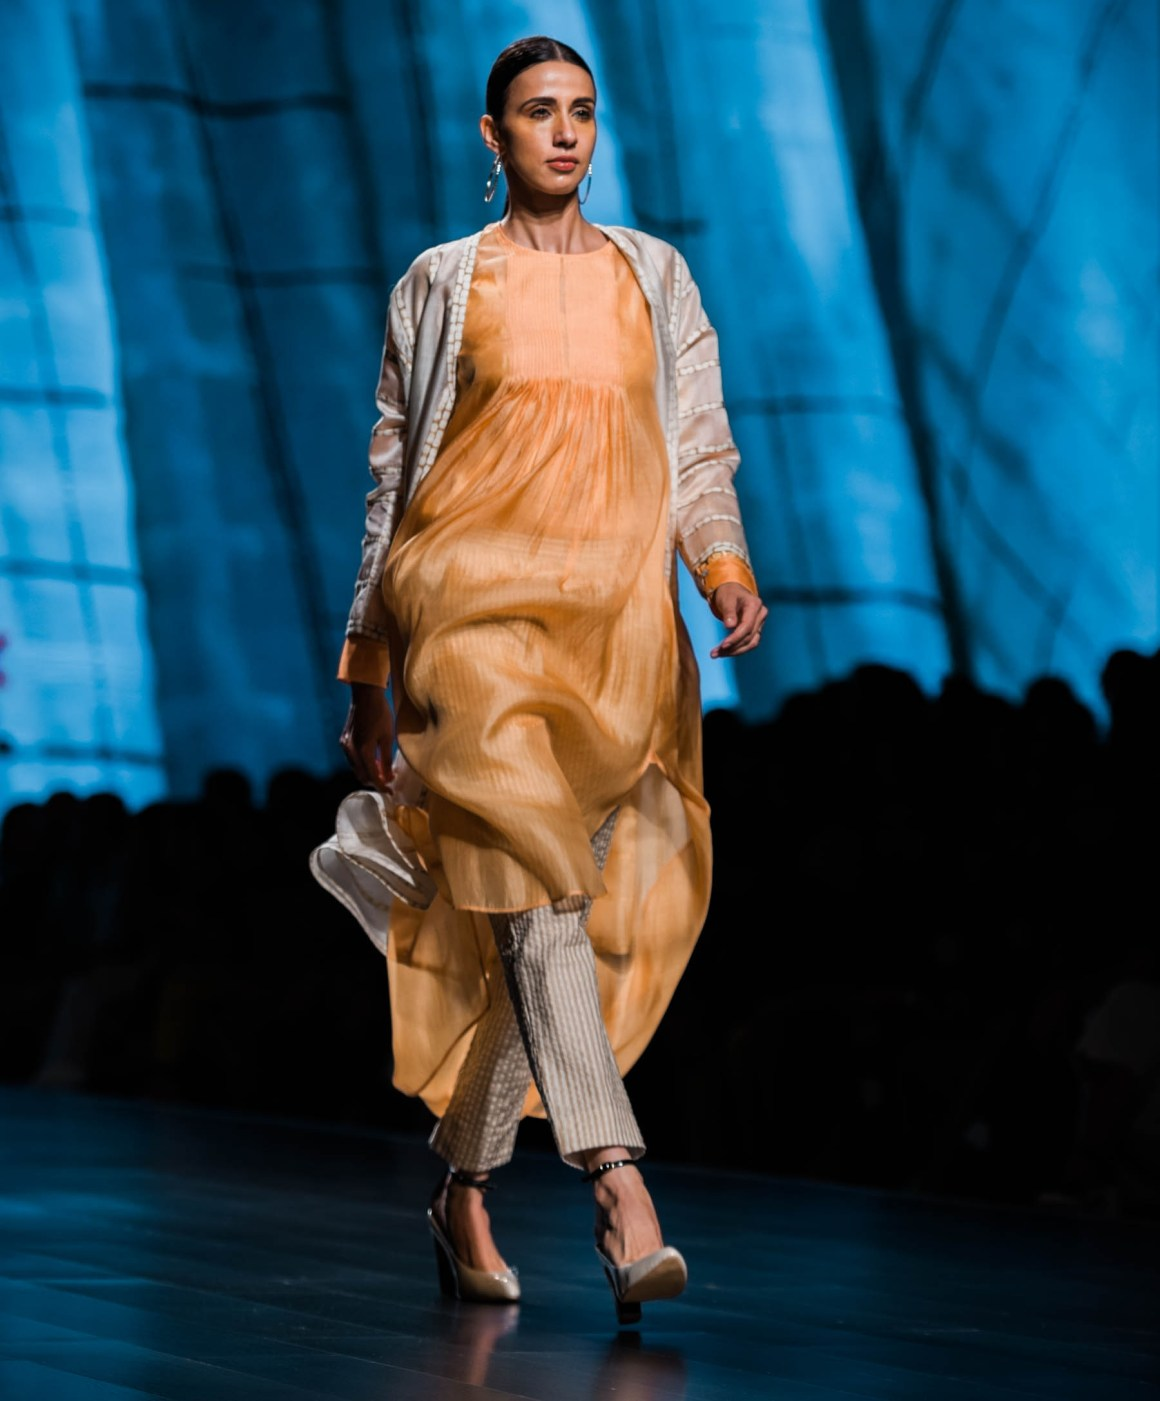 Naina Redhu, Naina.co, amrich, amrich designs, Fashion Designer, FDCI, Lotus MakeUp India Fashion Week Spring Summer 2019, LMIFWSS19, LMIFW, India Fashion Week, Fashion Week Delhi, MadeInIndia, Made In India, EyesForFashion, Professional Photographer, Blogger, Fashion Photographer, Lifestyle Photographer, Luxury Photographer, Delhi Photographer, Gurgaon Photographer, Delhi Blogger, Gurgaon Blogger, Indian Blogger